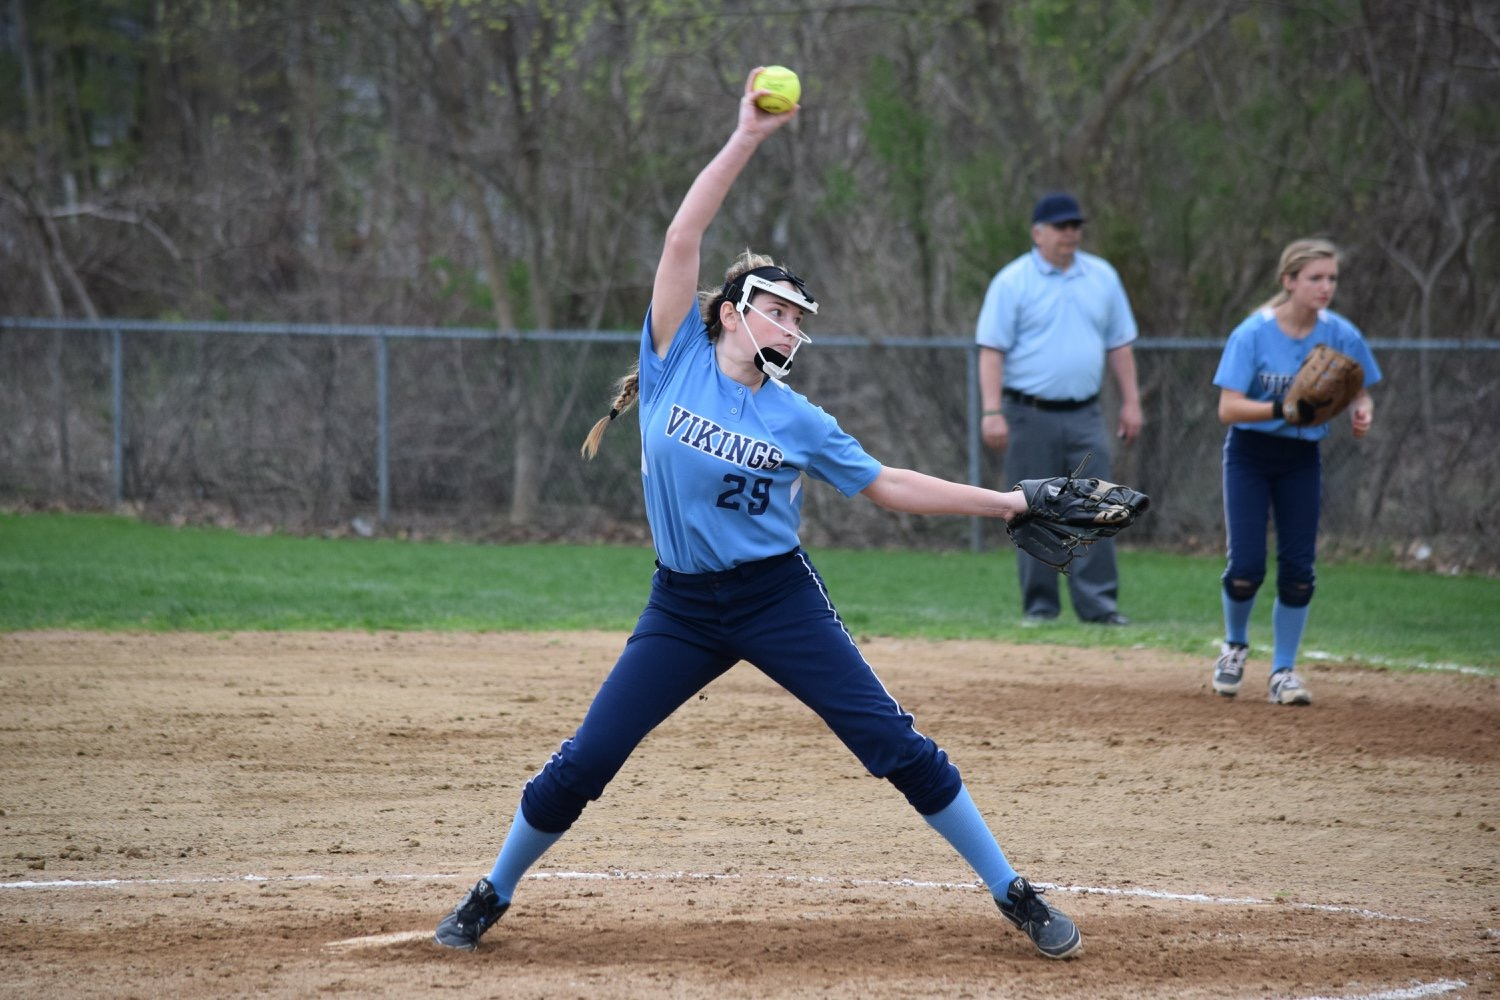 Katherine Quigley pitching last year.